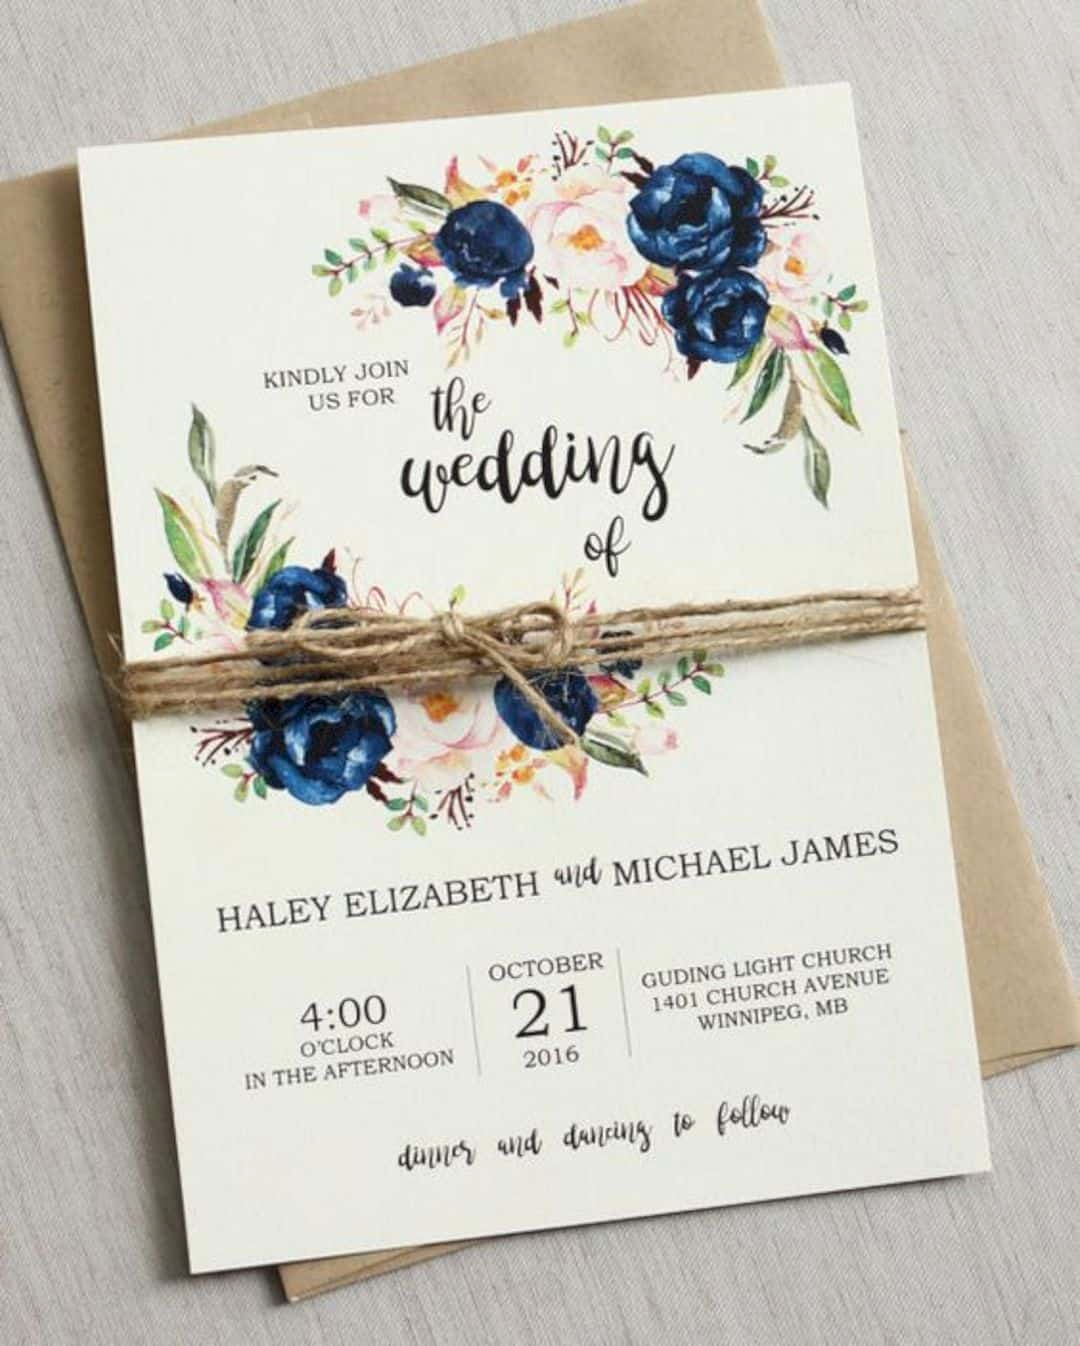 Cute Wedding Invitation Ideas Lovely 16 Beautiful Wedding Invitation Ideas